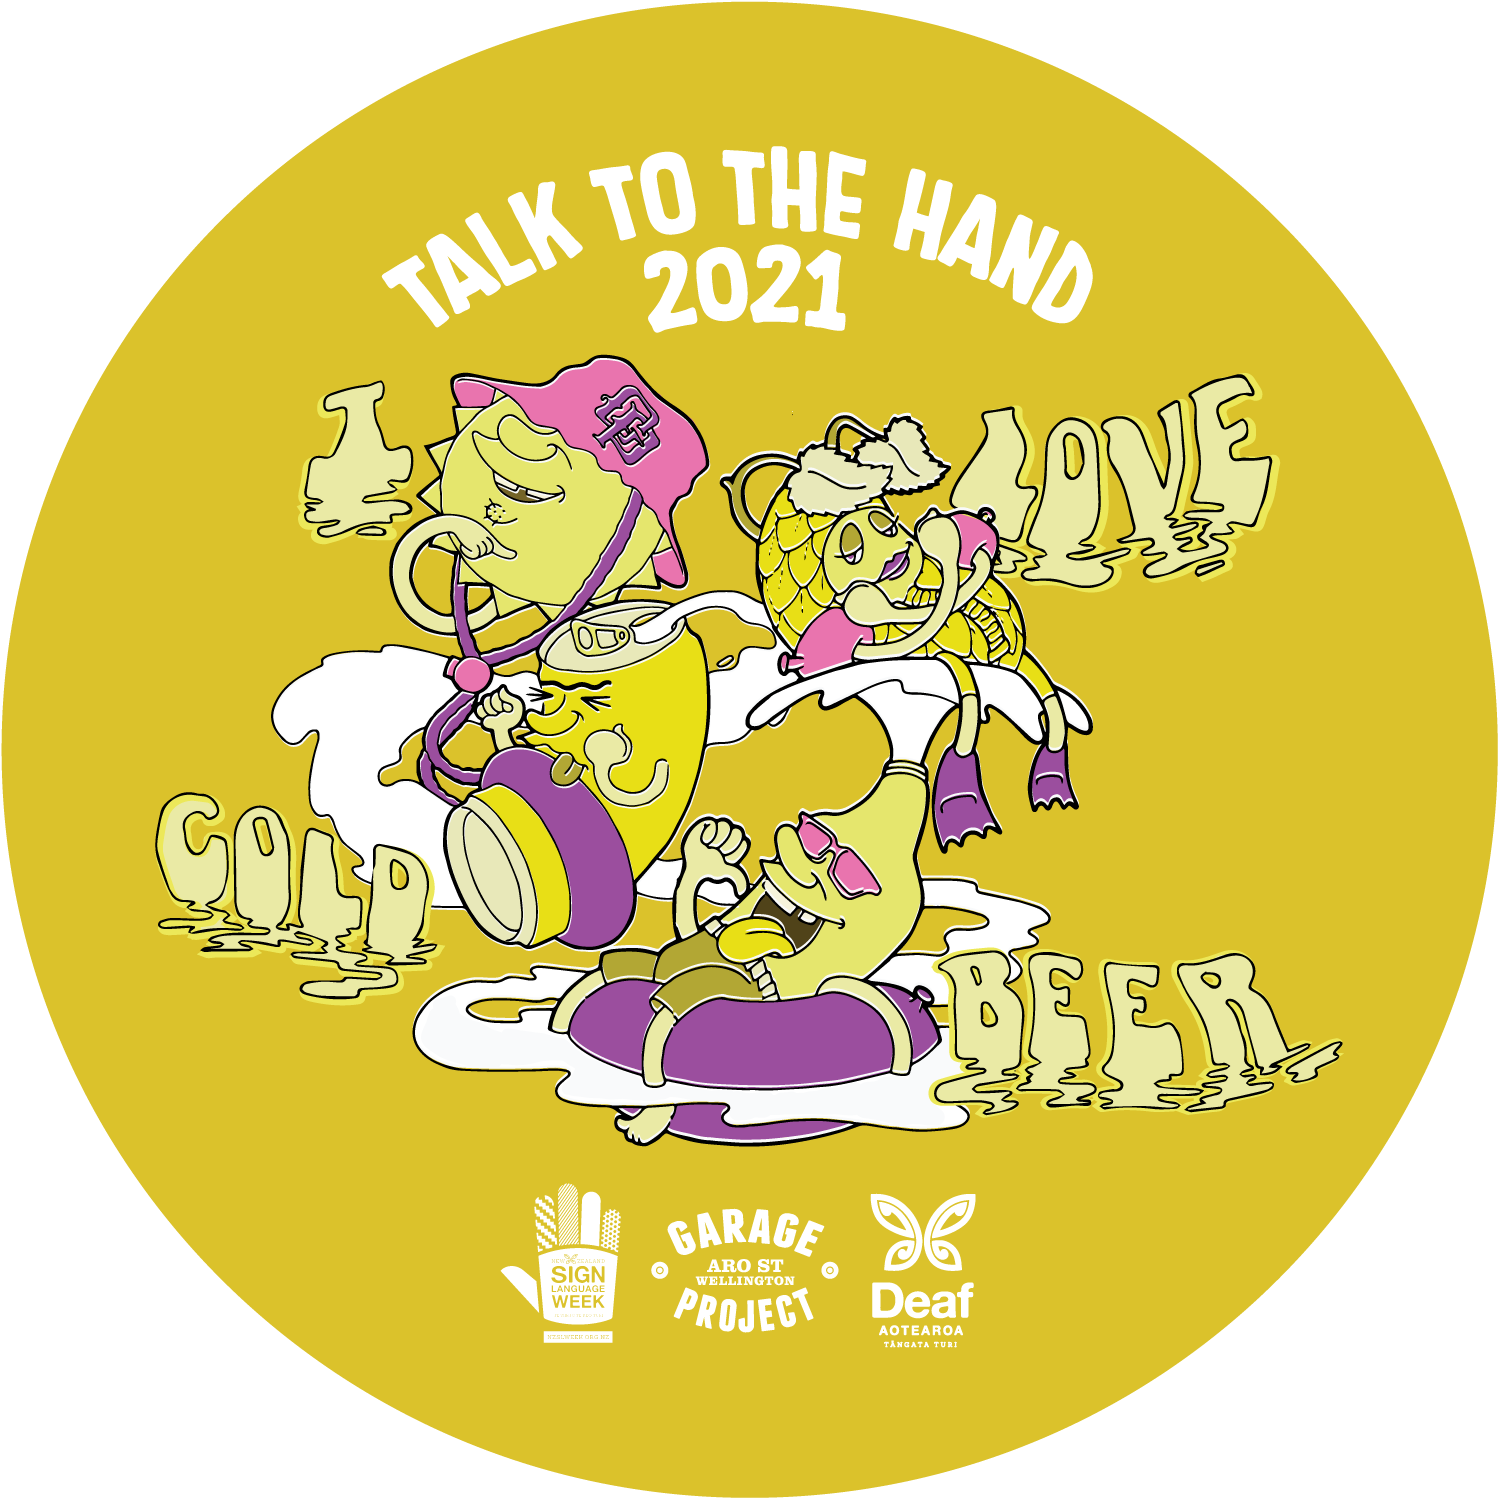 Talk To The Hand 2021